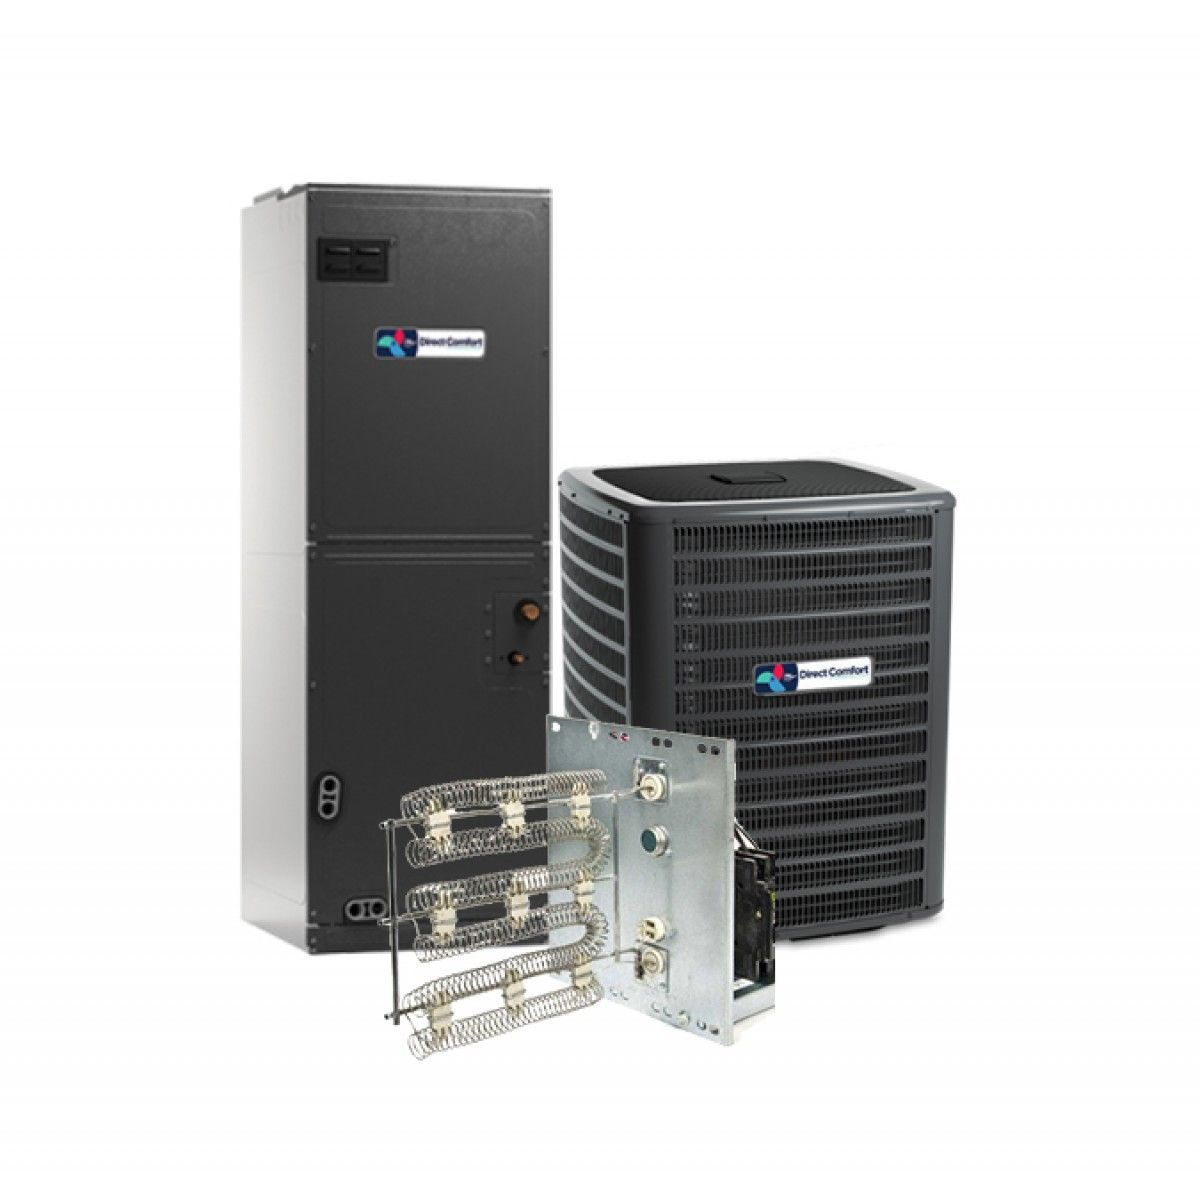 Reviews for Direct Comfort 1 5 Ton 16 SEER Heat Pump System